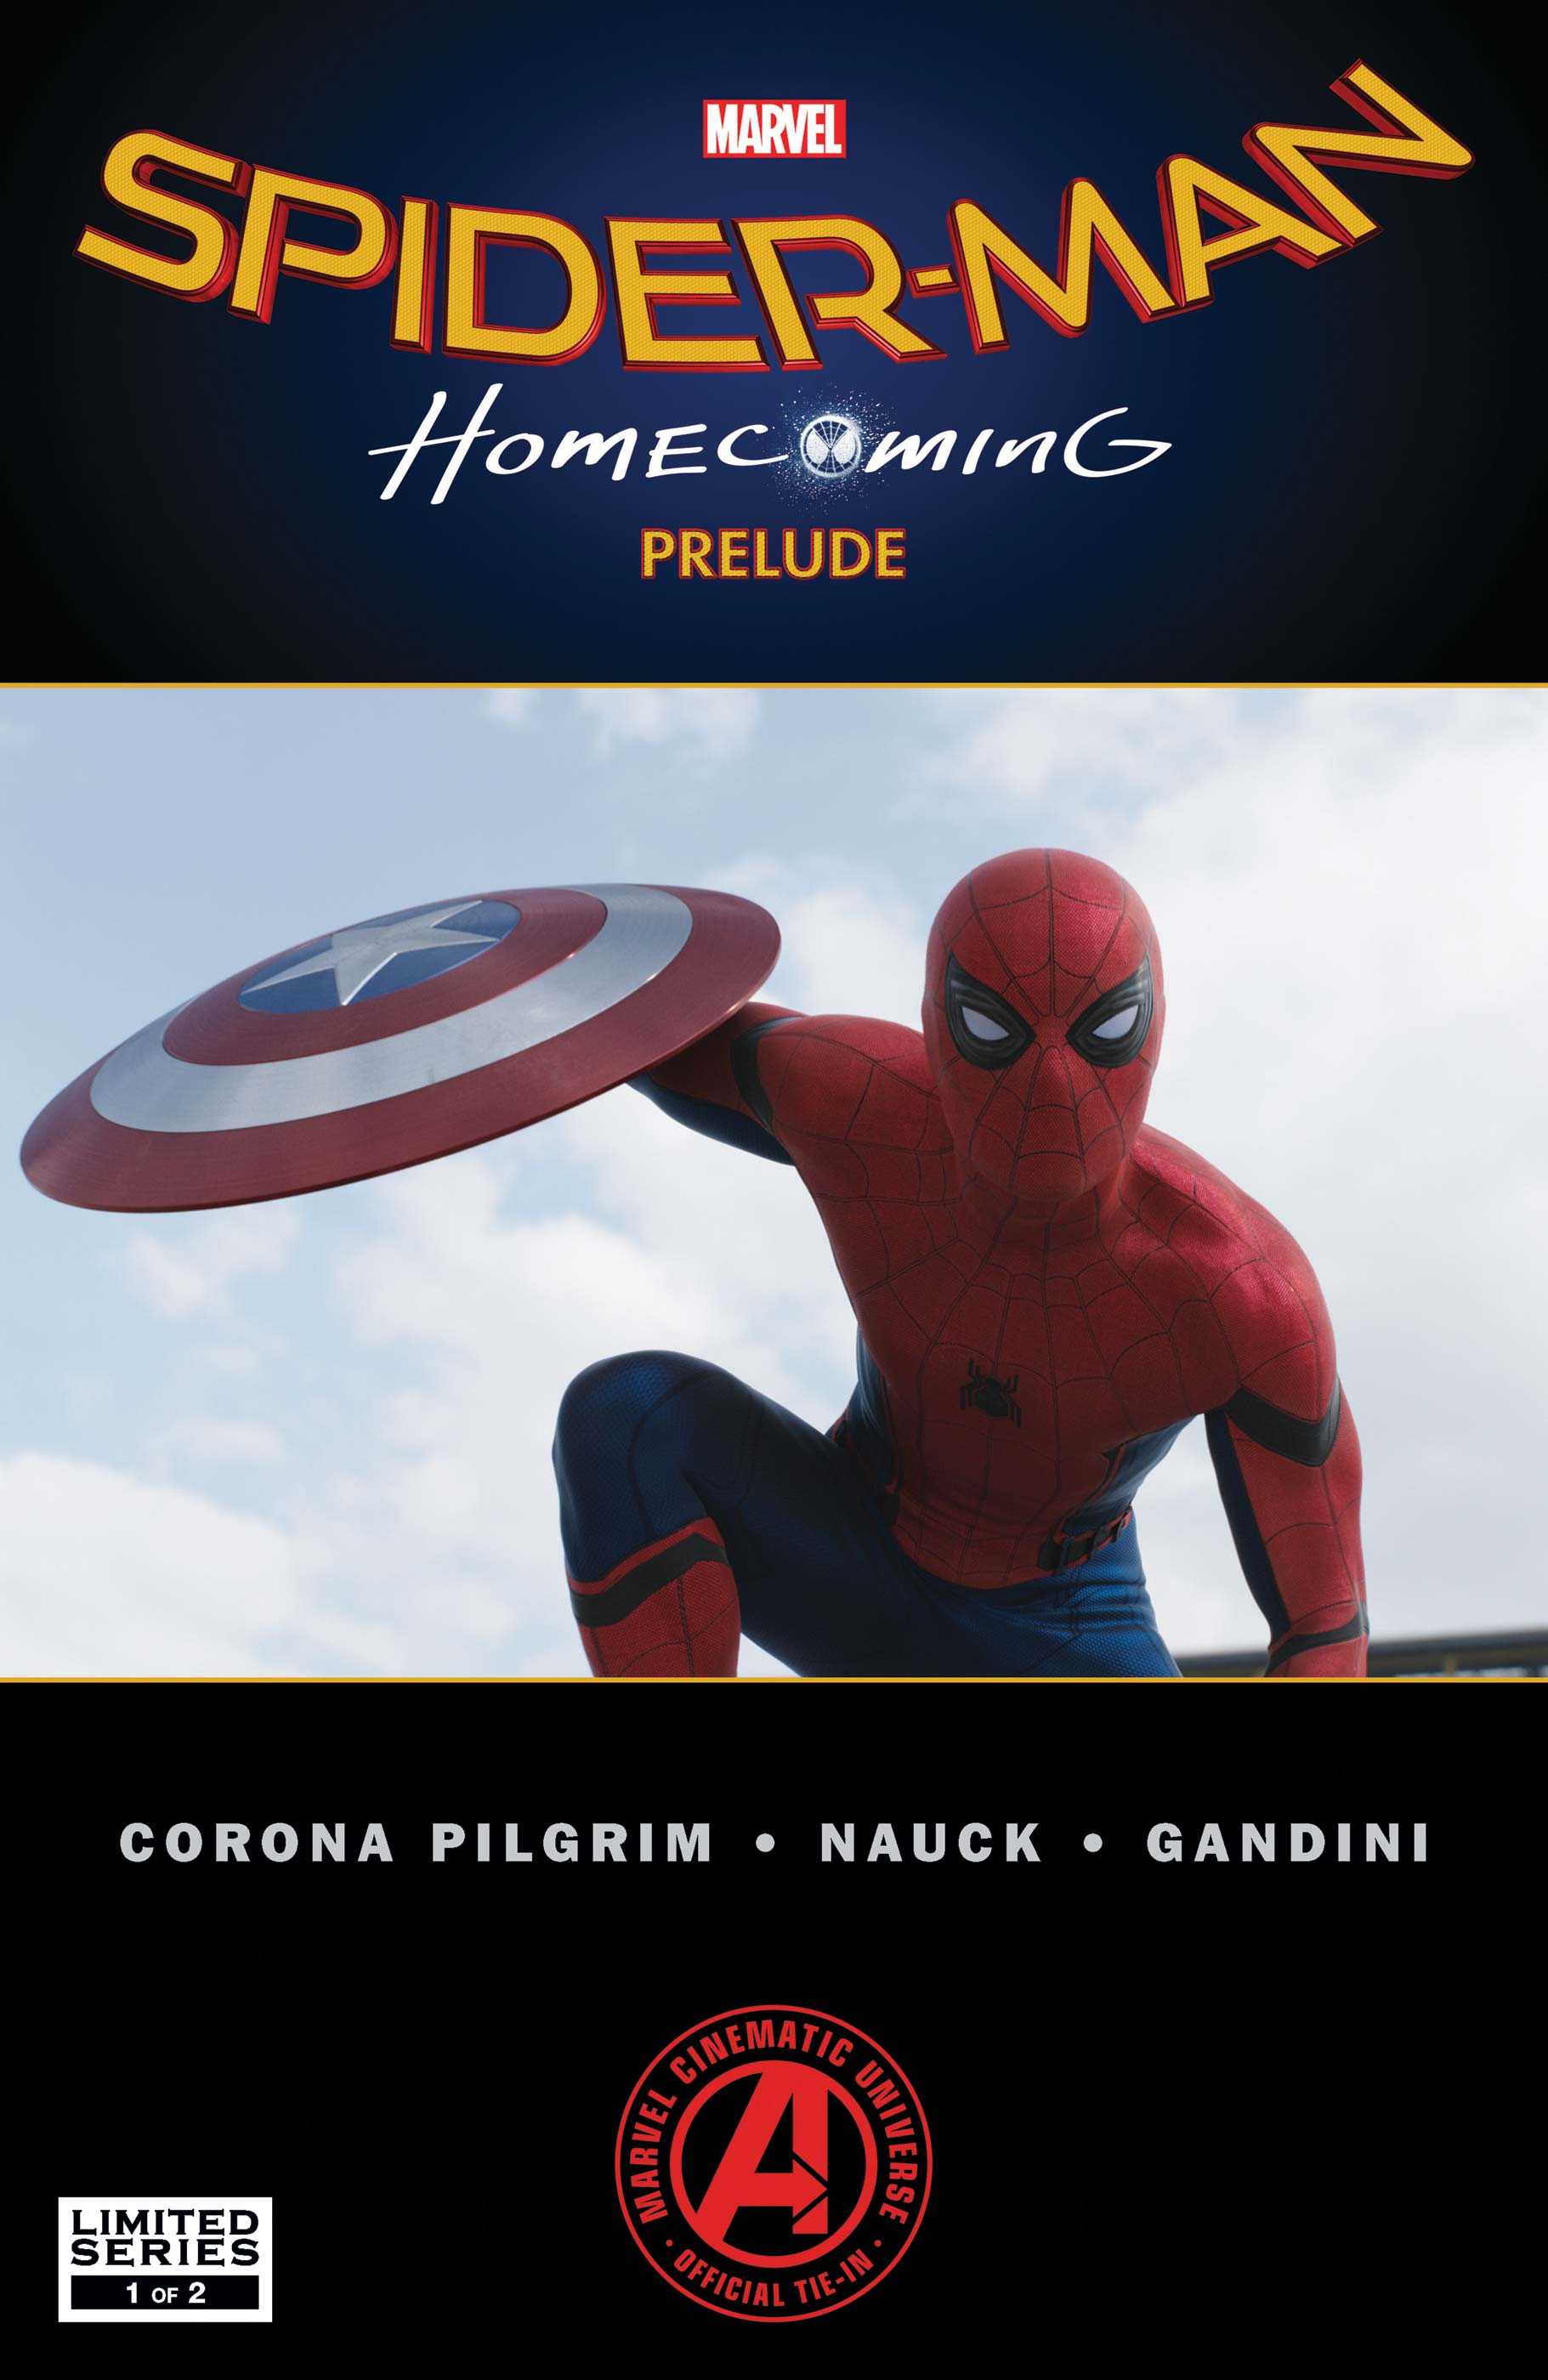 Marvel's Spider-Man: Homecoming Prelude (2017) #1